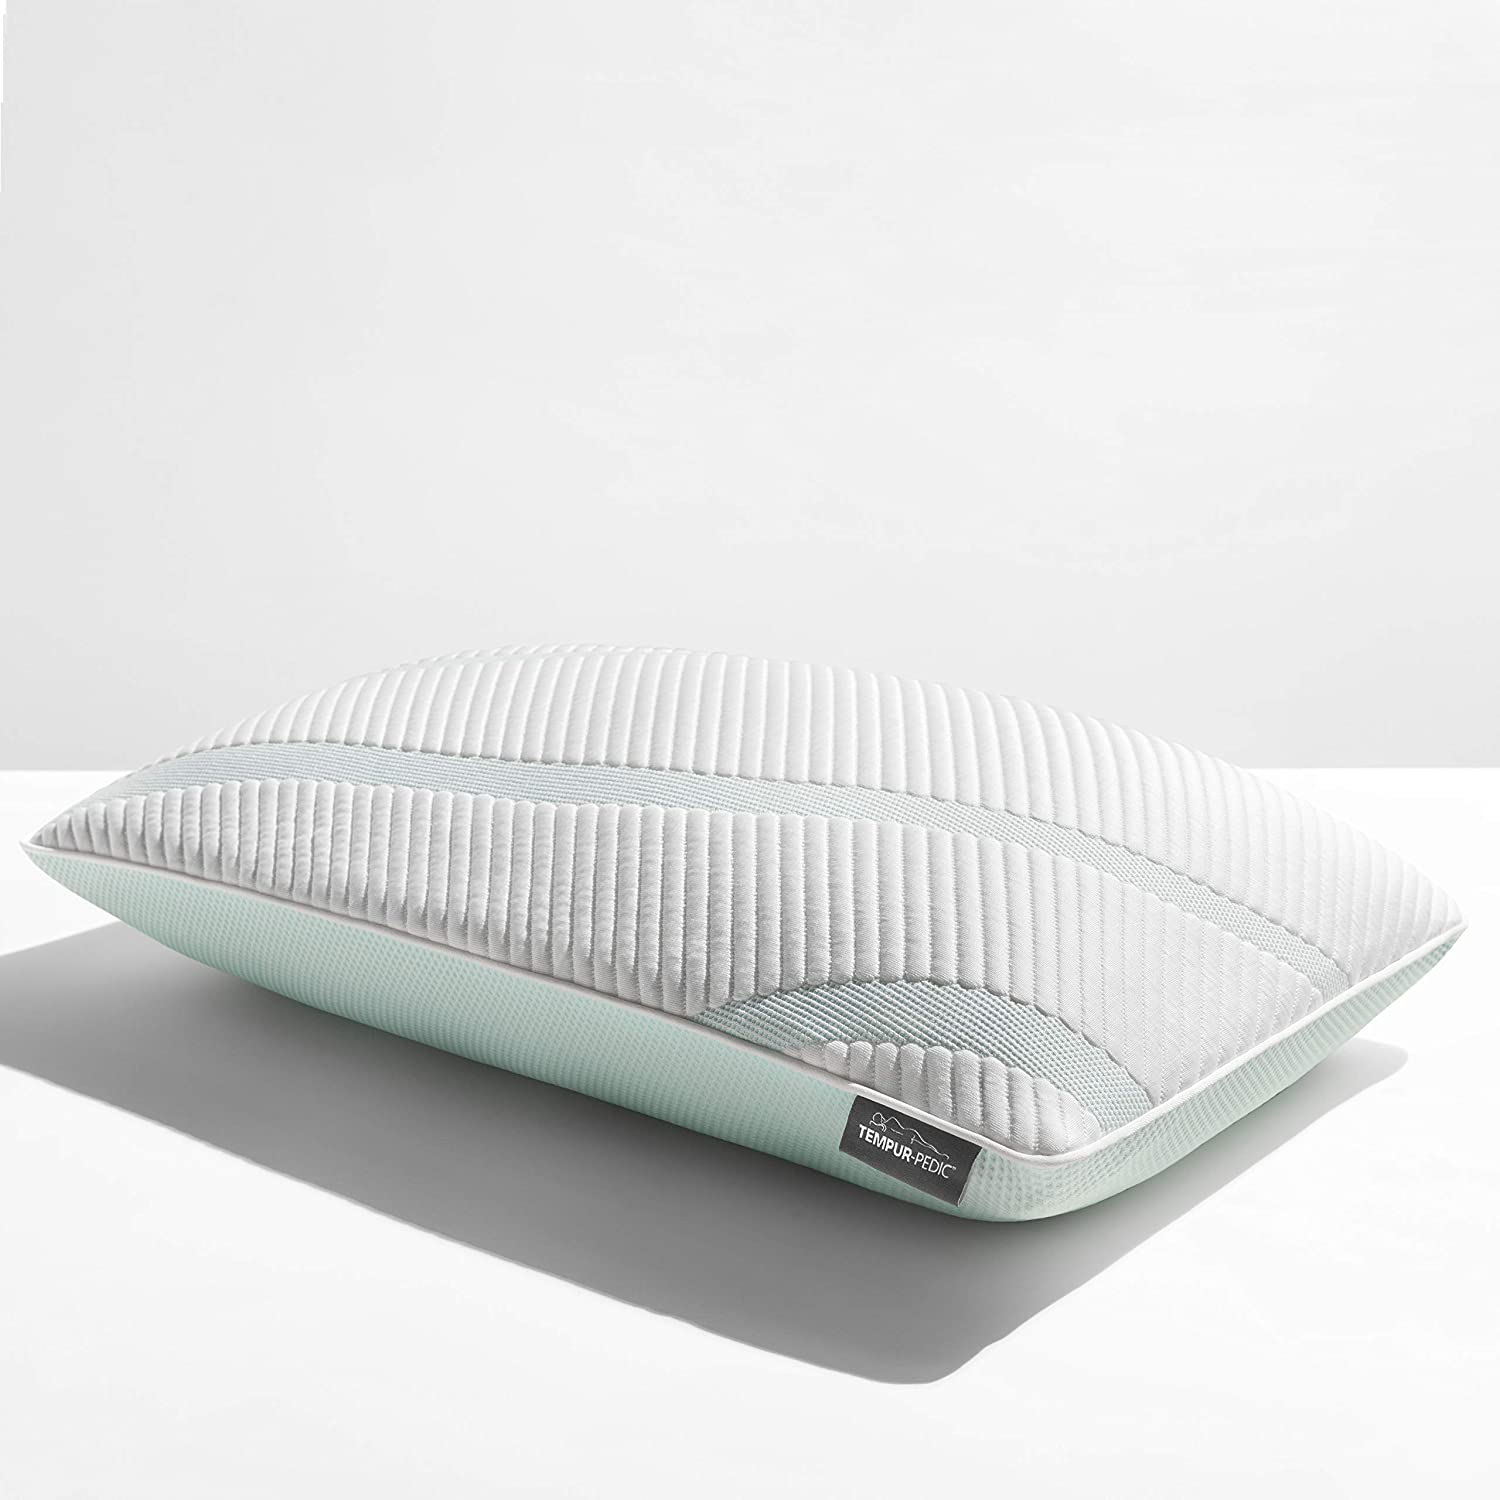 Tempur-Pedic TEMPUR-Adapt ProMid + Cooling-Queen Pillow, White